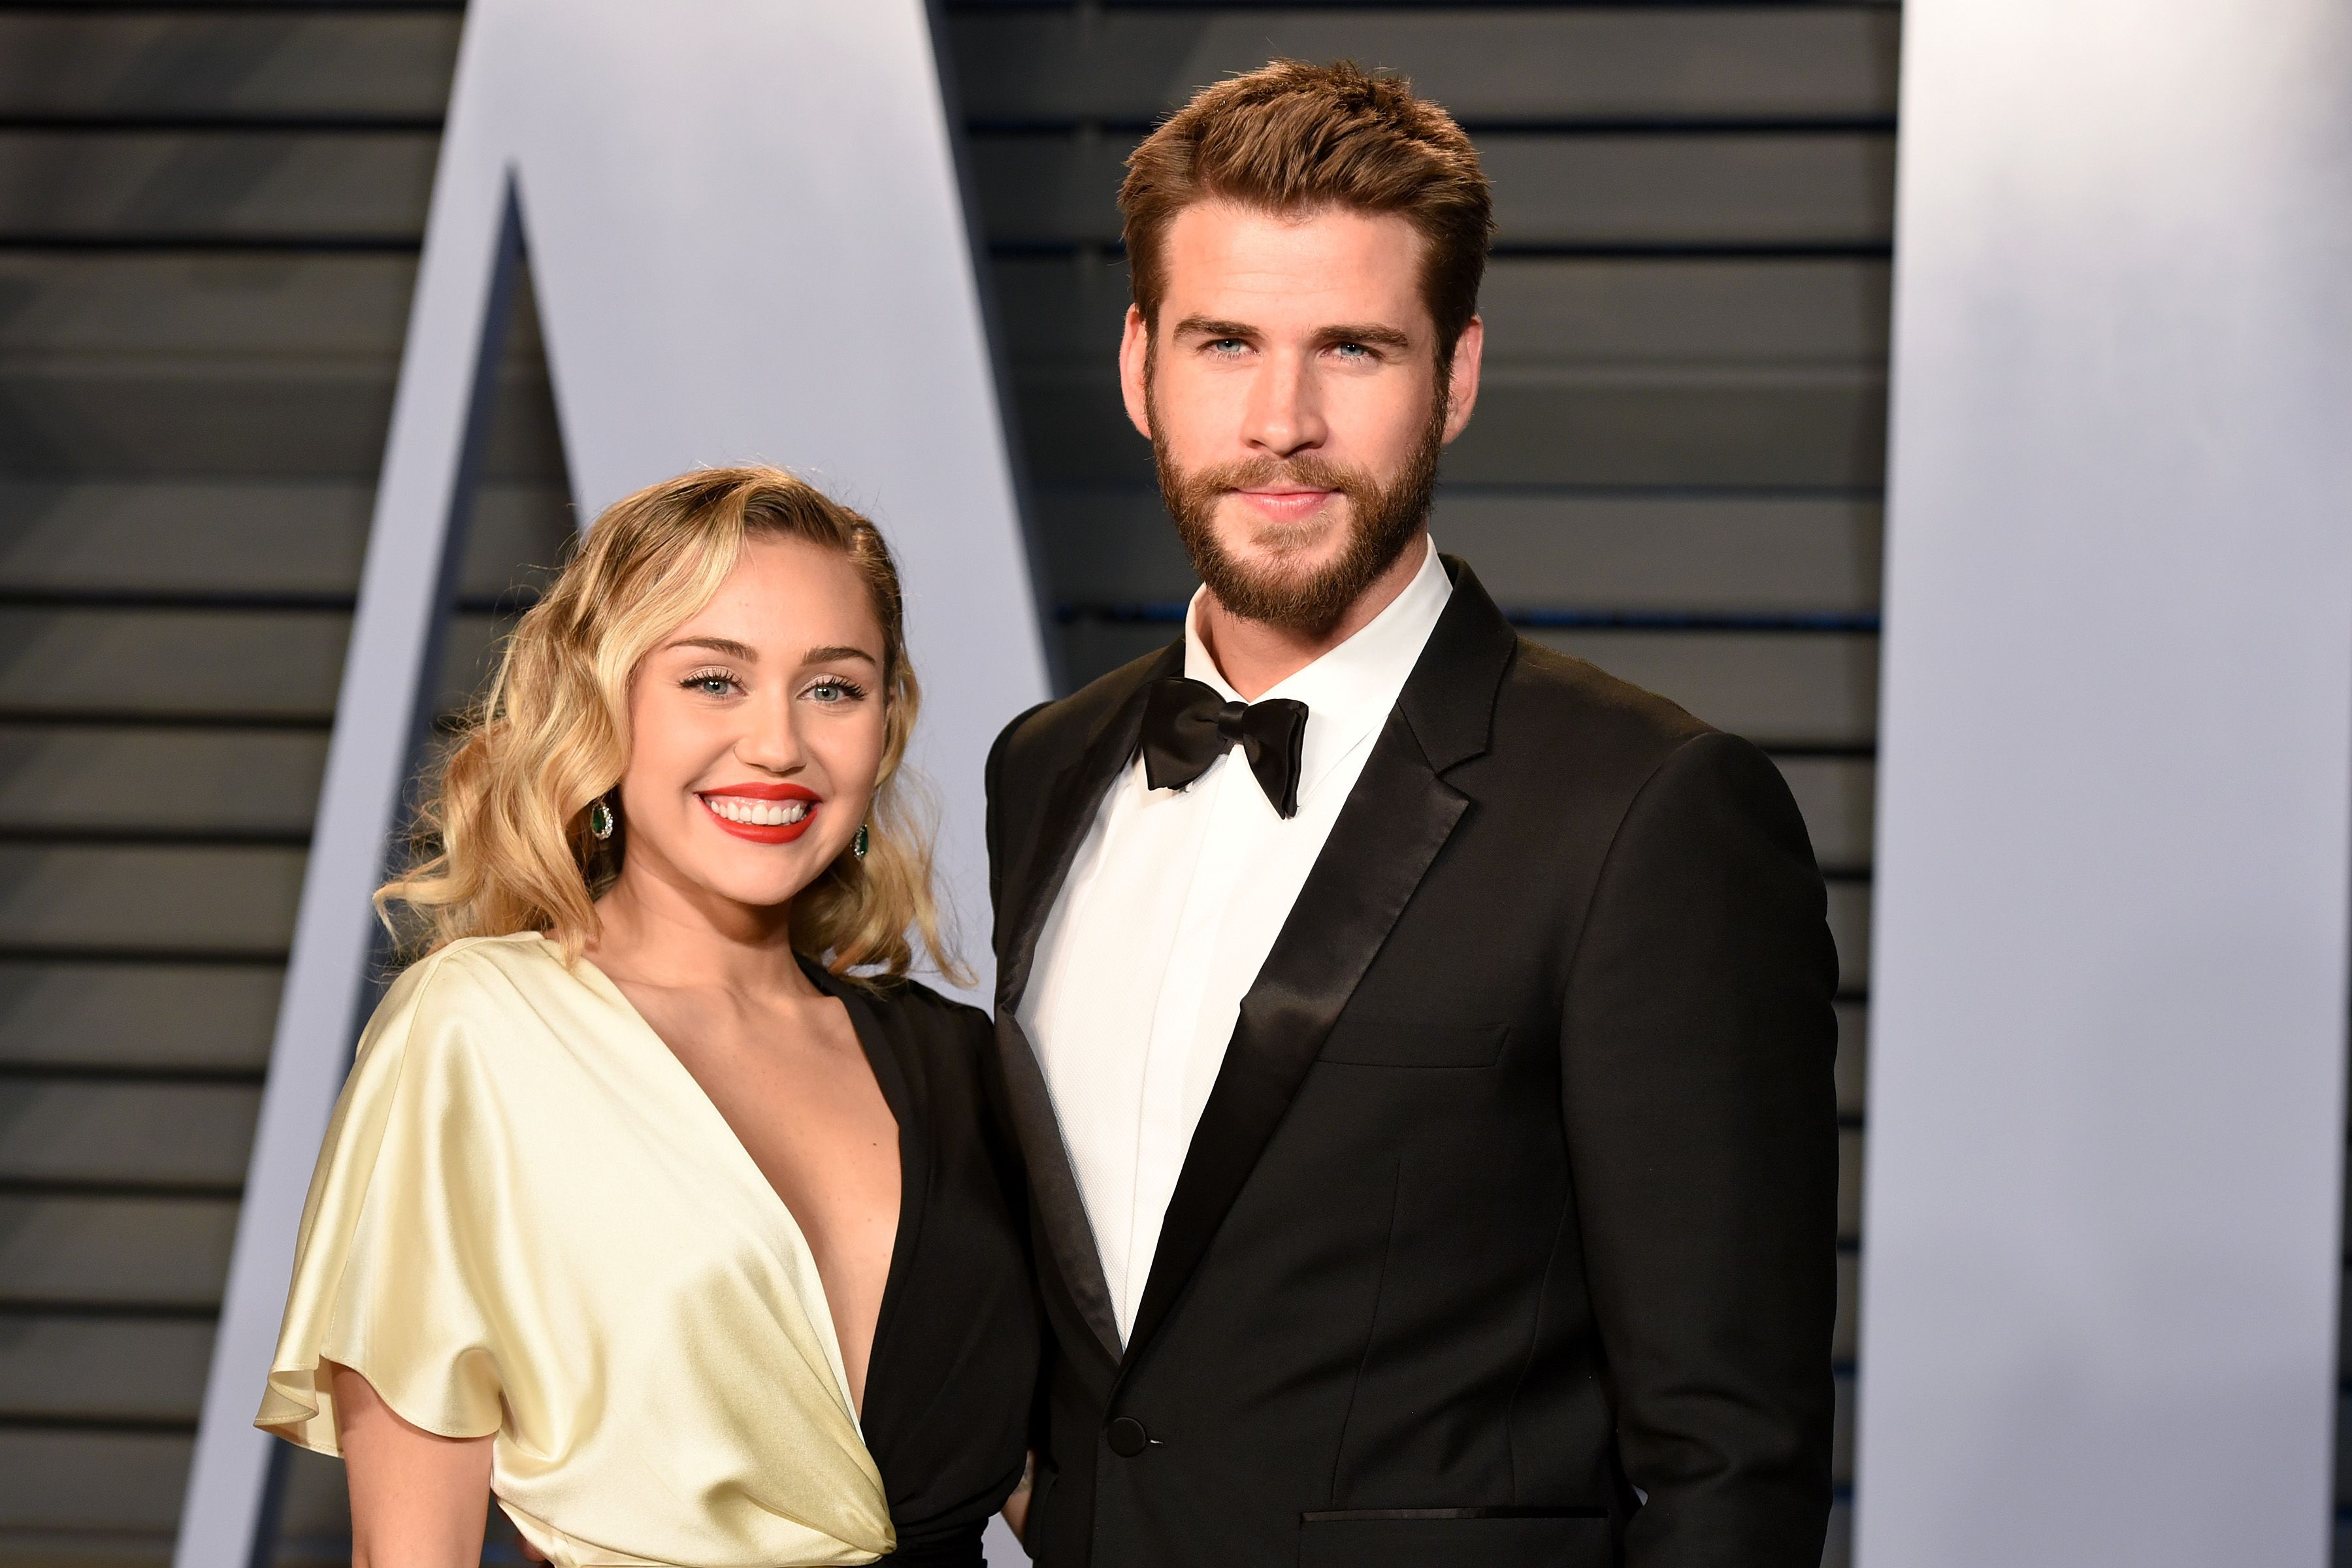 Miley Cyrus and Liam Hemsworth Reportedly Haven't Talked Since They Announced Their Split